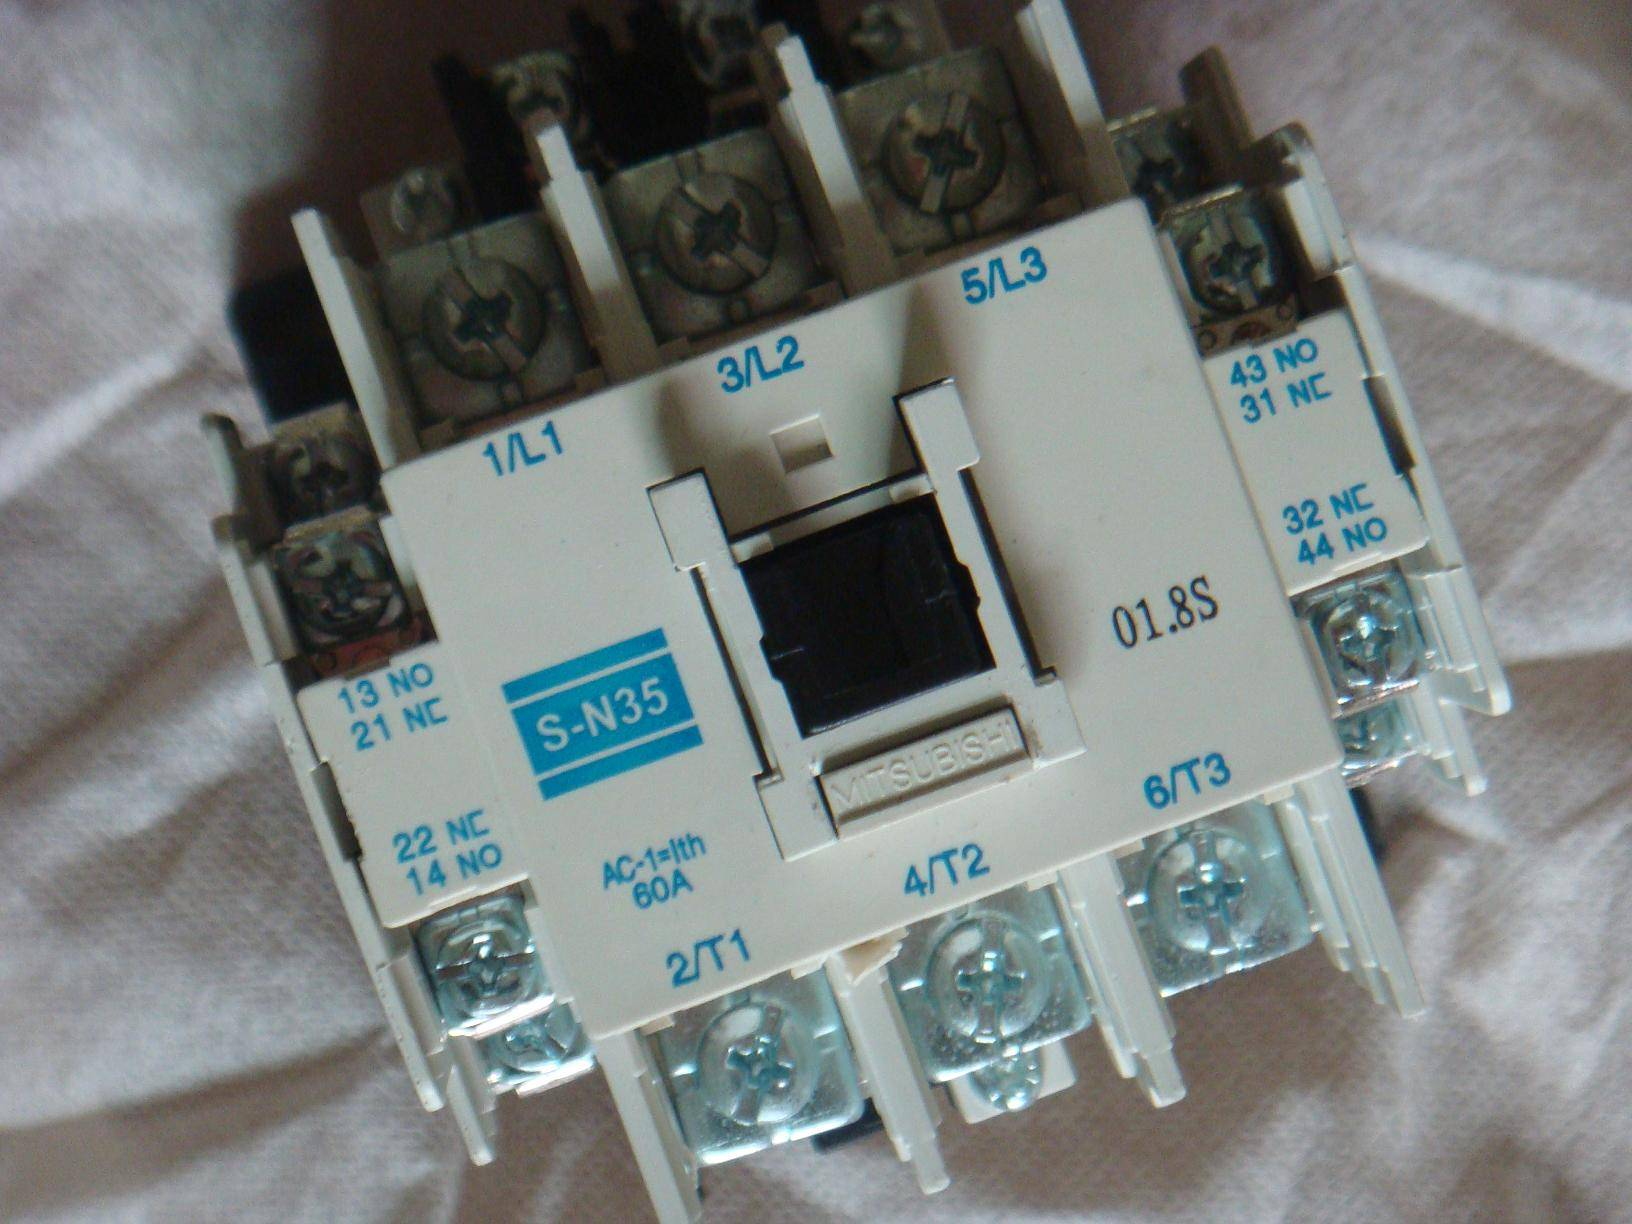 Best supplier of Mitsubishi AC/DC contactors,circuit breaker,switches,sensor etc.S-N35,SN-25,S-N65